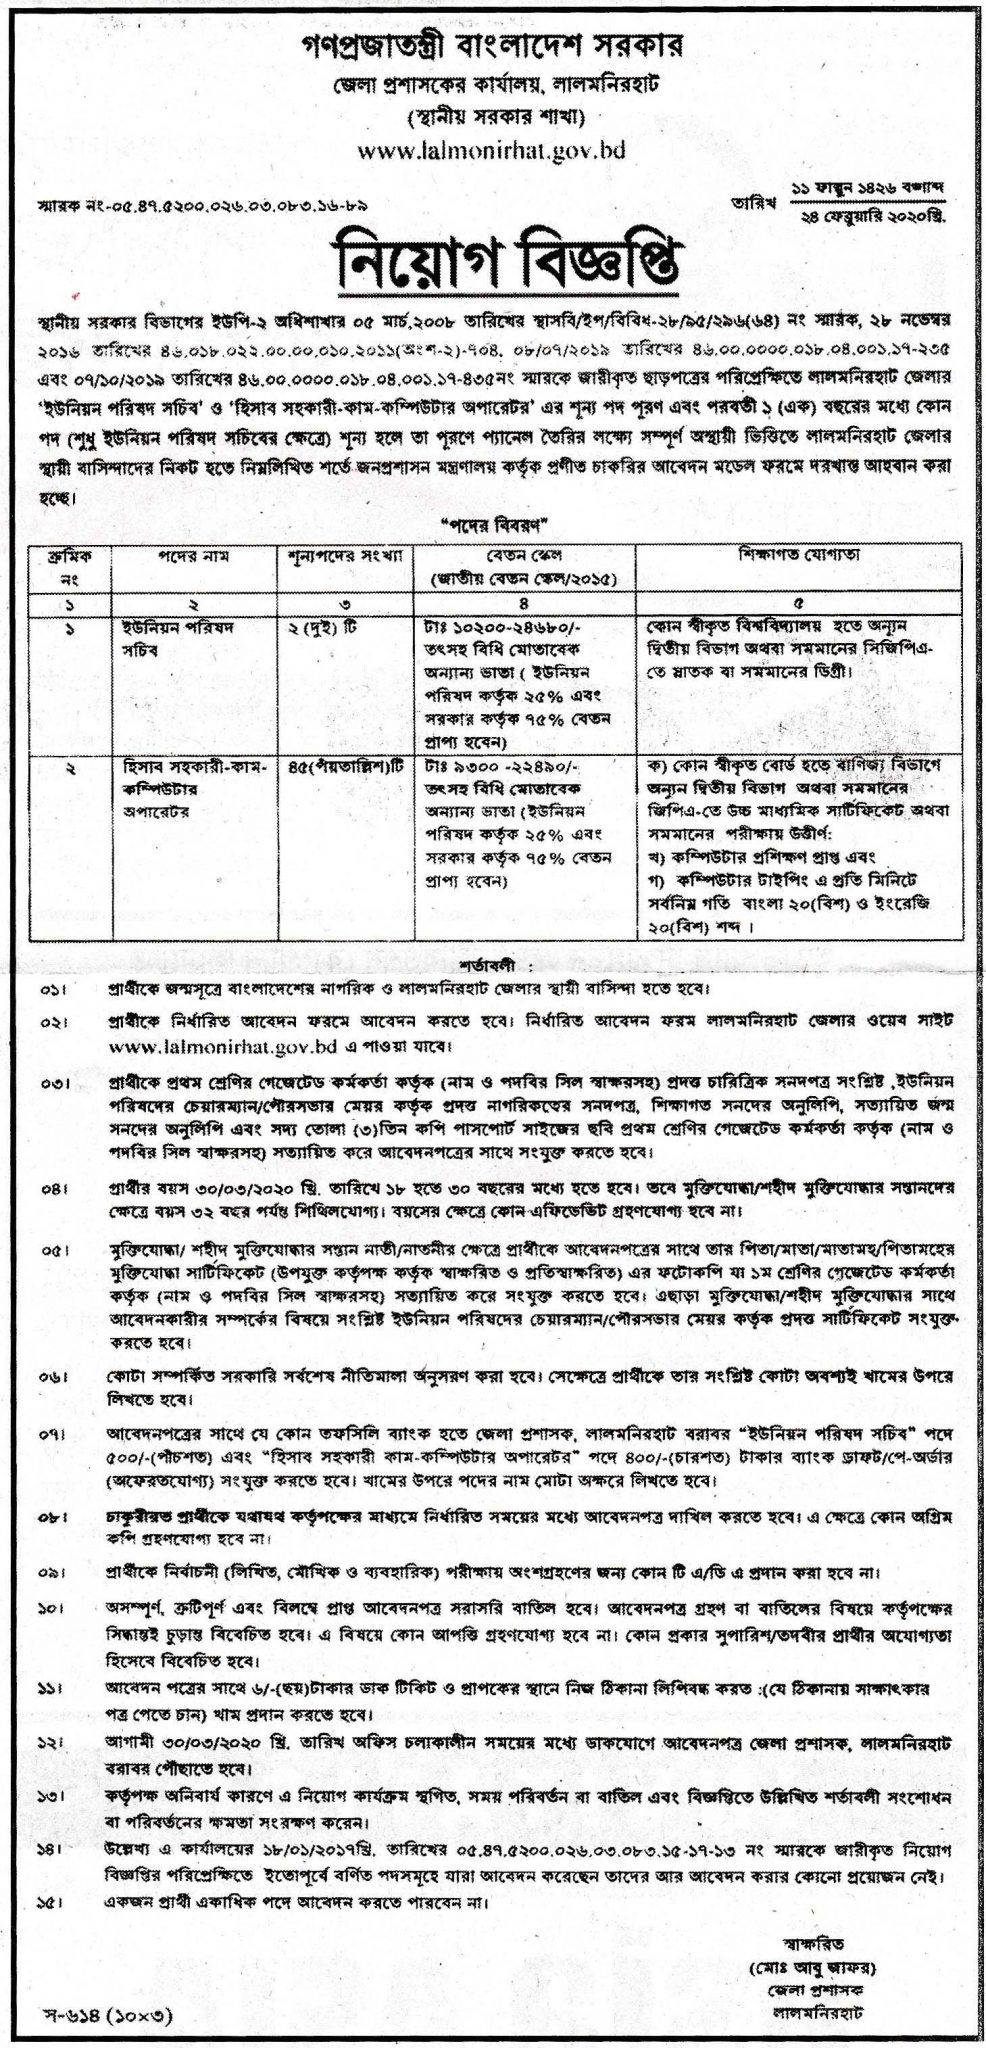 Lalmonirhat Deputy Commissioner's Office Job Circular 2020